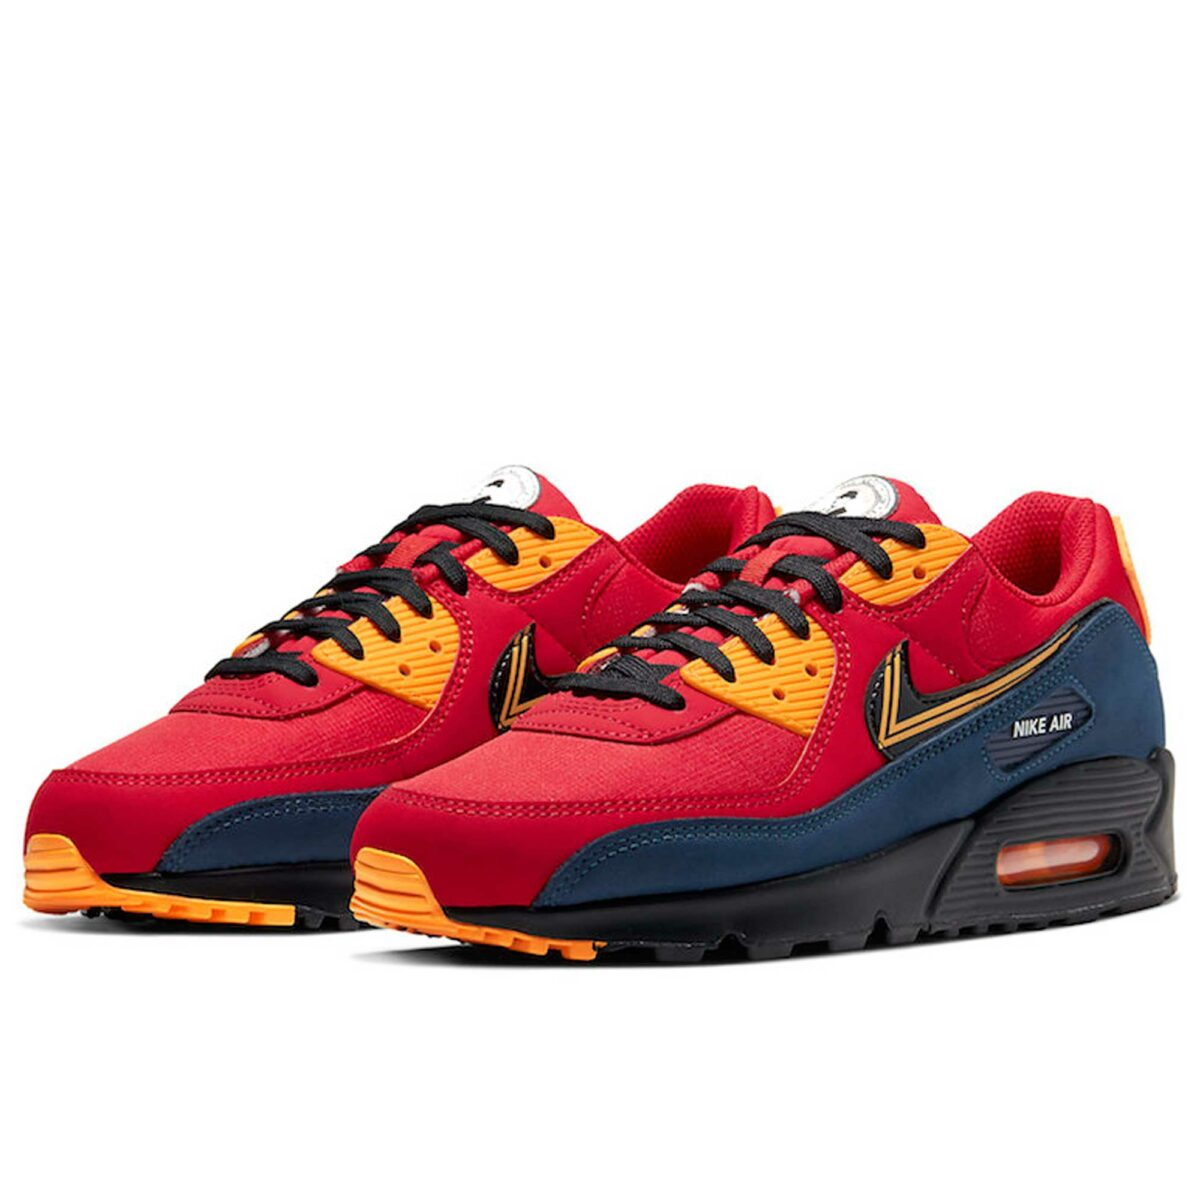 nike air max 90 london CJ1794_600 купить